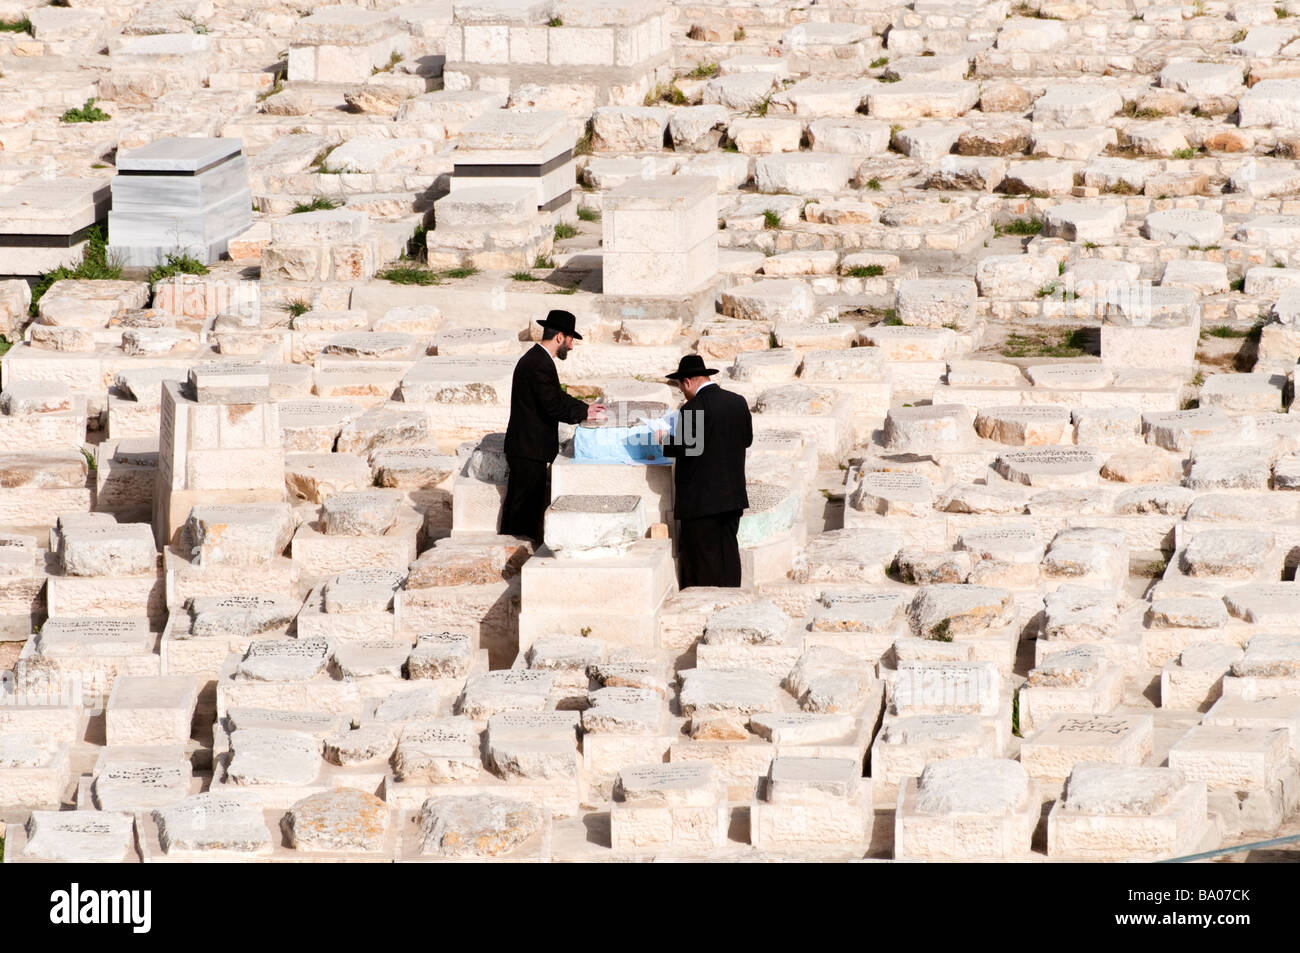 Orthodox Jews prying at one of the tombs in the cemetery on the Mount of Olives Jerusalem, Israel - Stock Image